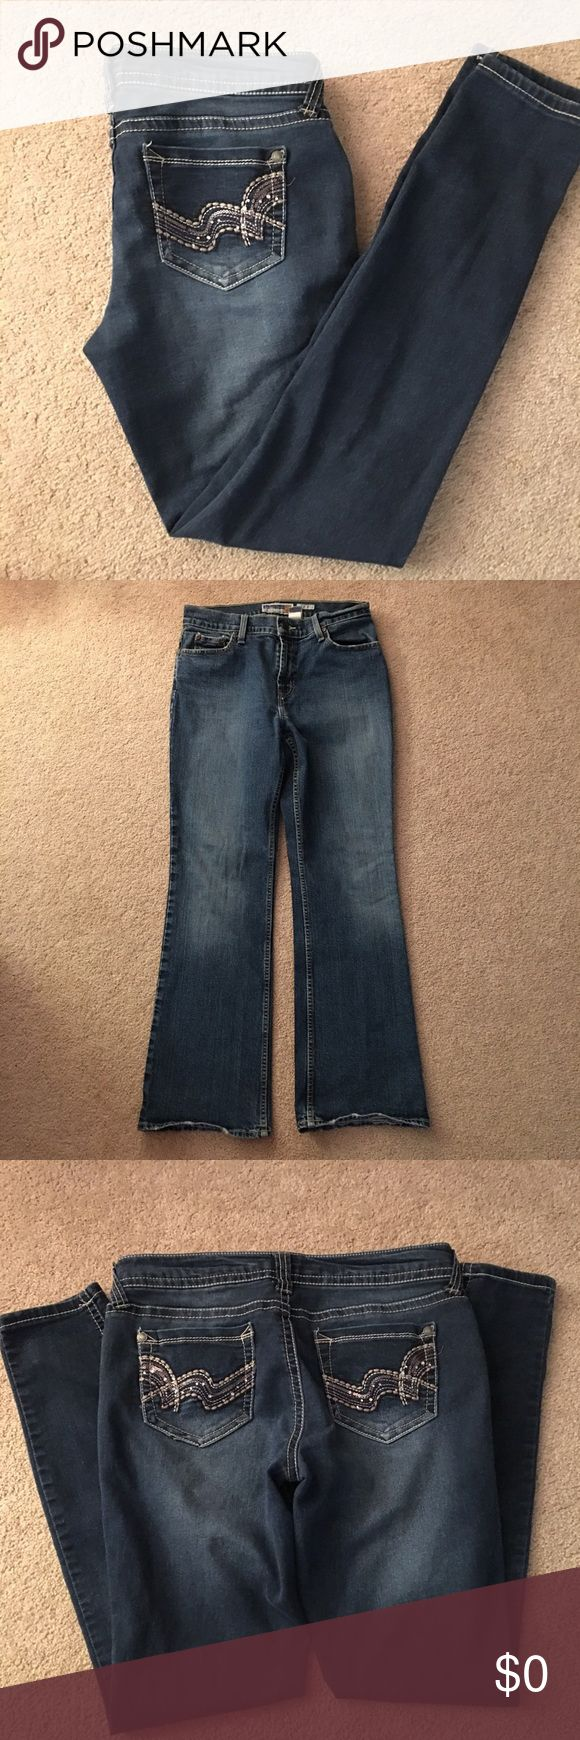 """🆕⬆️Wallflower Jeans🆕⬆️Sz 9 Jrs 🆕⬆️Wallflower Jeans. Tag has been ripped out.  Measurements are: waist 15"""" across, so about a 28"""" Wx 30"""" inseam, front rise 8"""".  = Sz 9 Jrs. Very stretchy, spandex jeans feel. LOOK AT ALL PICTURES-they are part of the description-I bundle, offer 10% off multiple items, ship quick, & bundle. OPEN TO OFFERS & Negotiations (which I am more than willing to discuss FAIR offers!!) however, they will ONLY CONSIDERED through using the """"OFFER"""" BUTTON PLEASE!🆕⬆️…"""